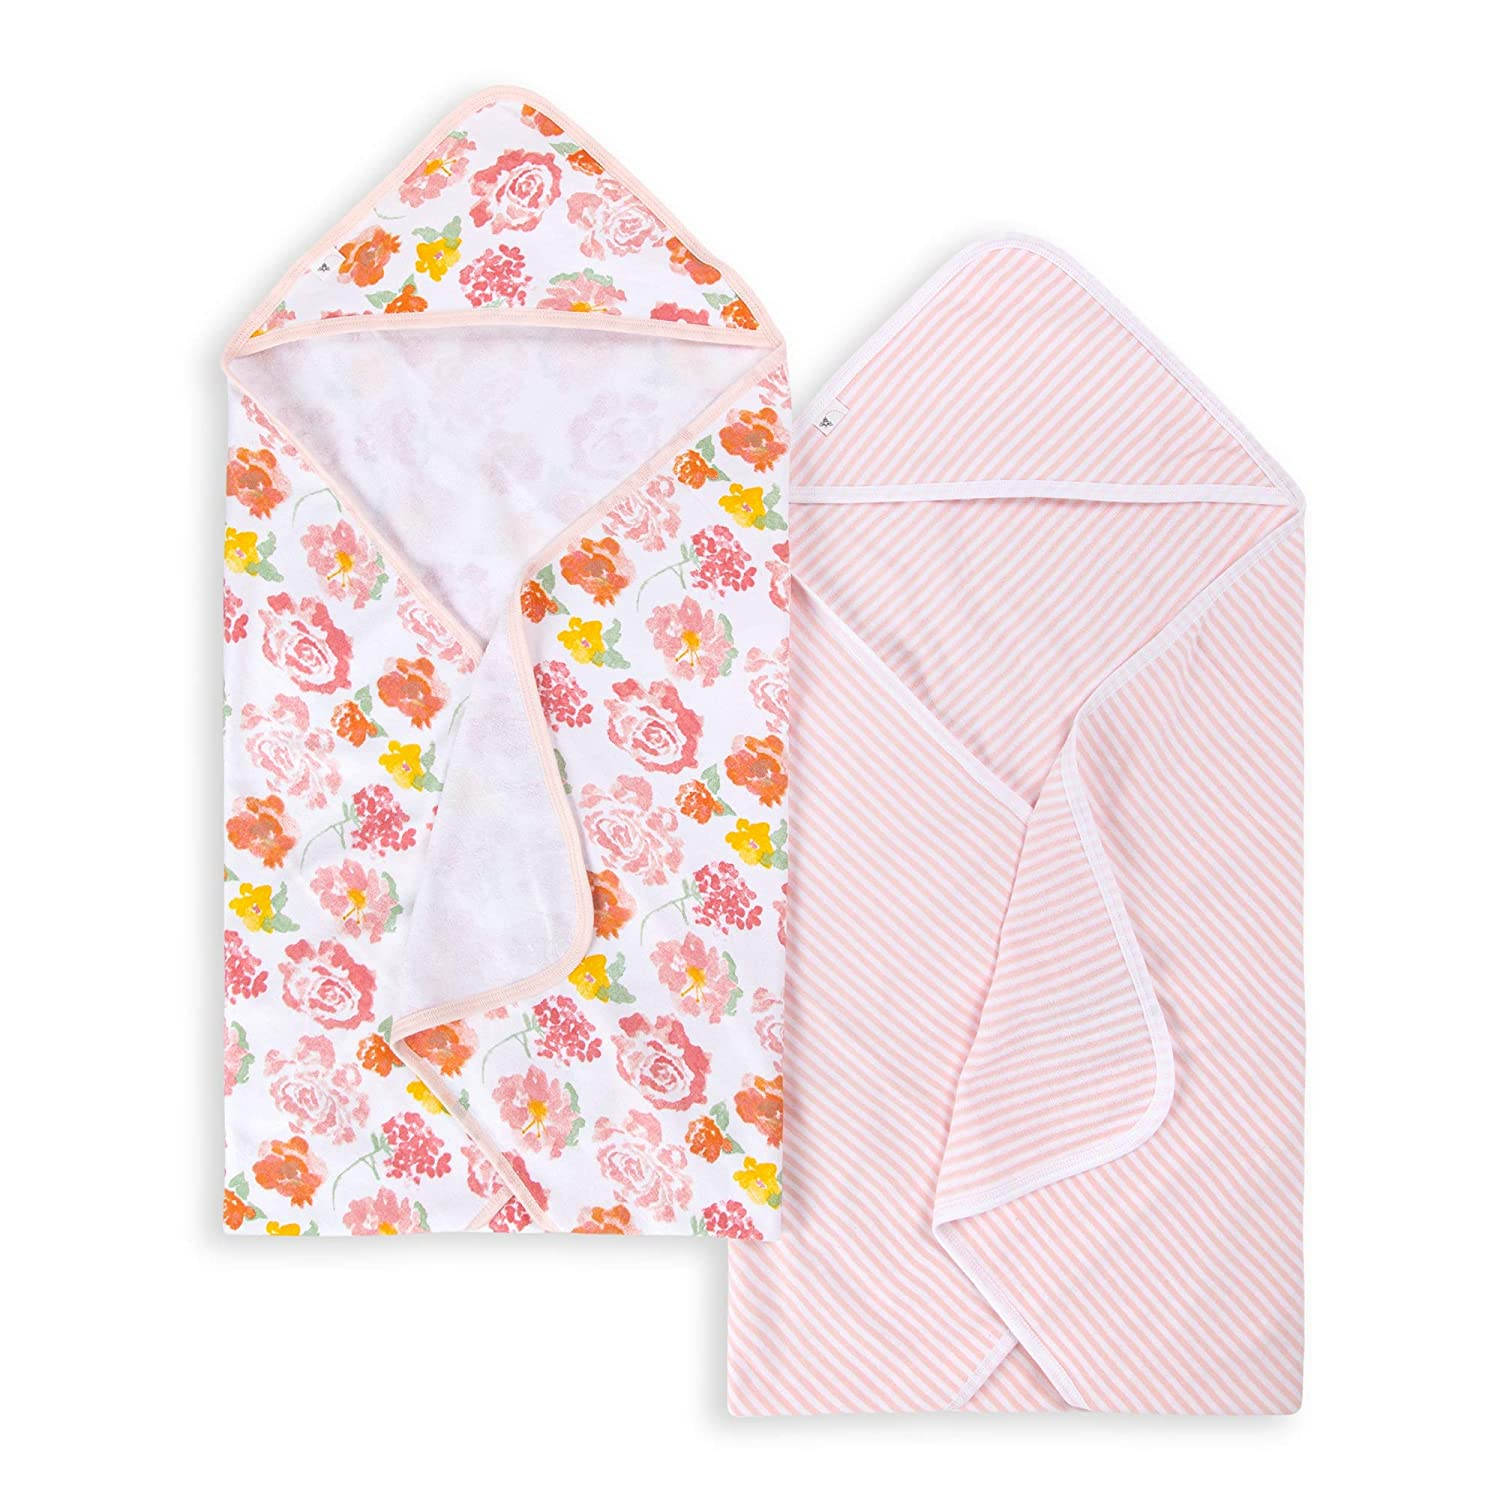 Burt's Bees Baby - Popular Hooded Towels So Super Direct store Knit Absorbent Terry